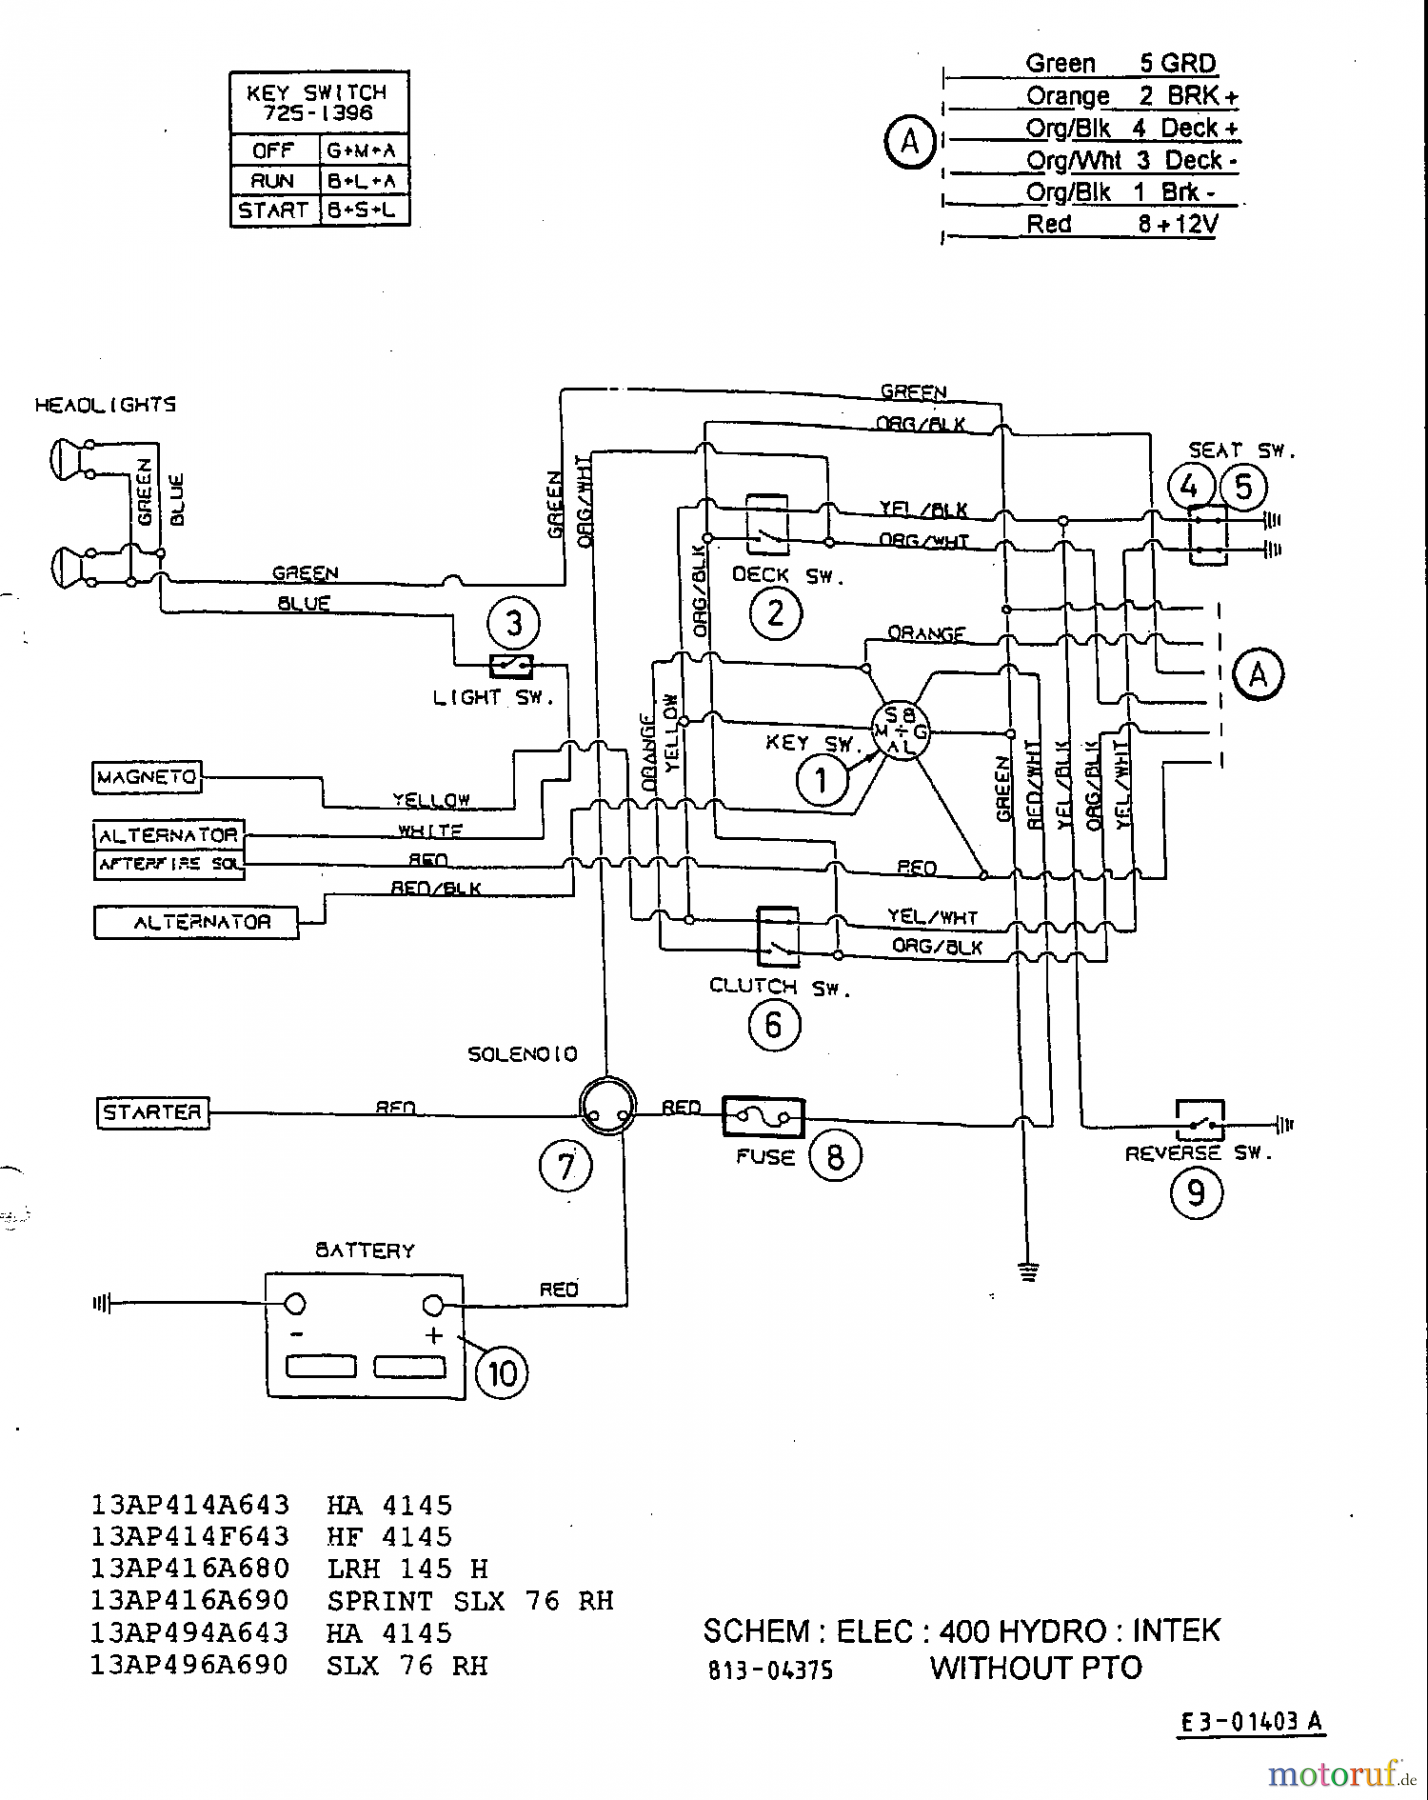 145hp 42quot lawn tractor diagram and parts list for mtd ridingmower 46quot deck electric pto diagram and parts list for mtd ridingmower [ 1428 x 1800 Pixel ]